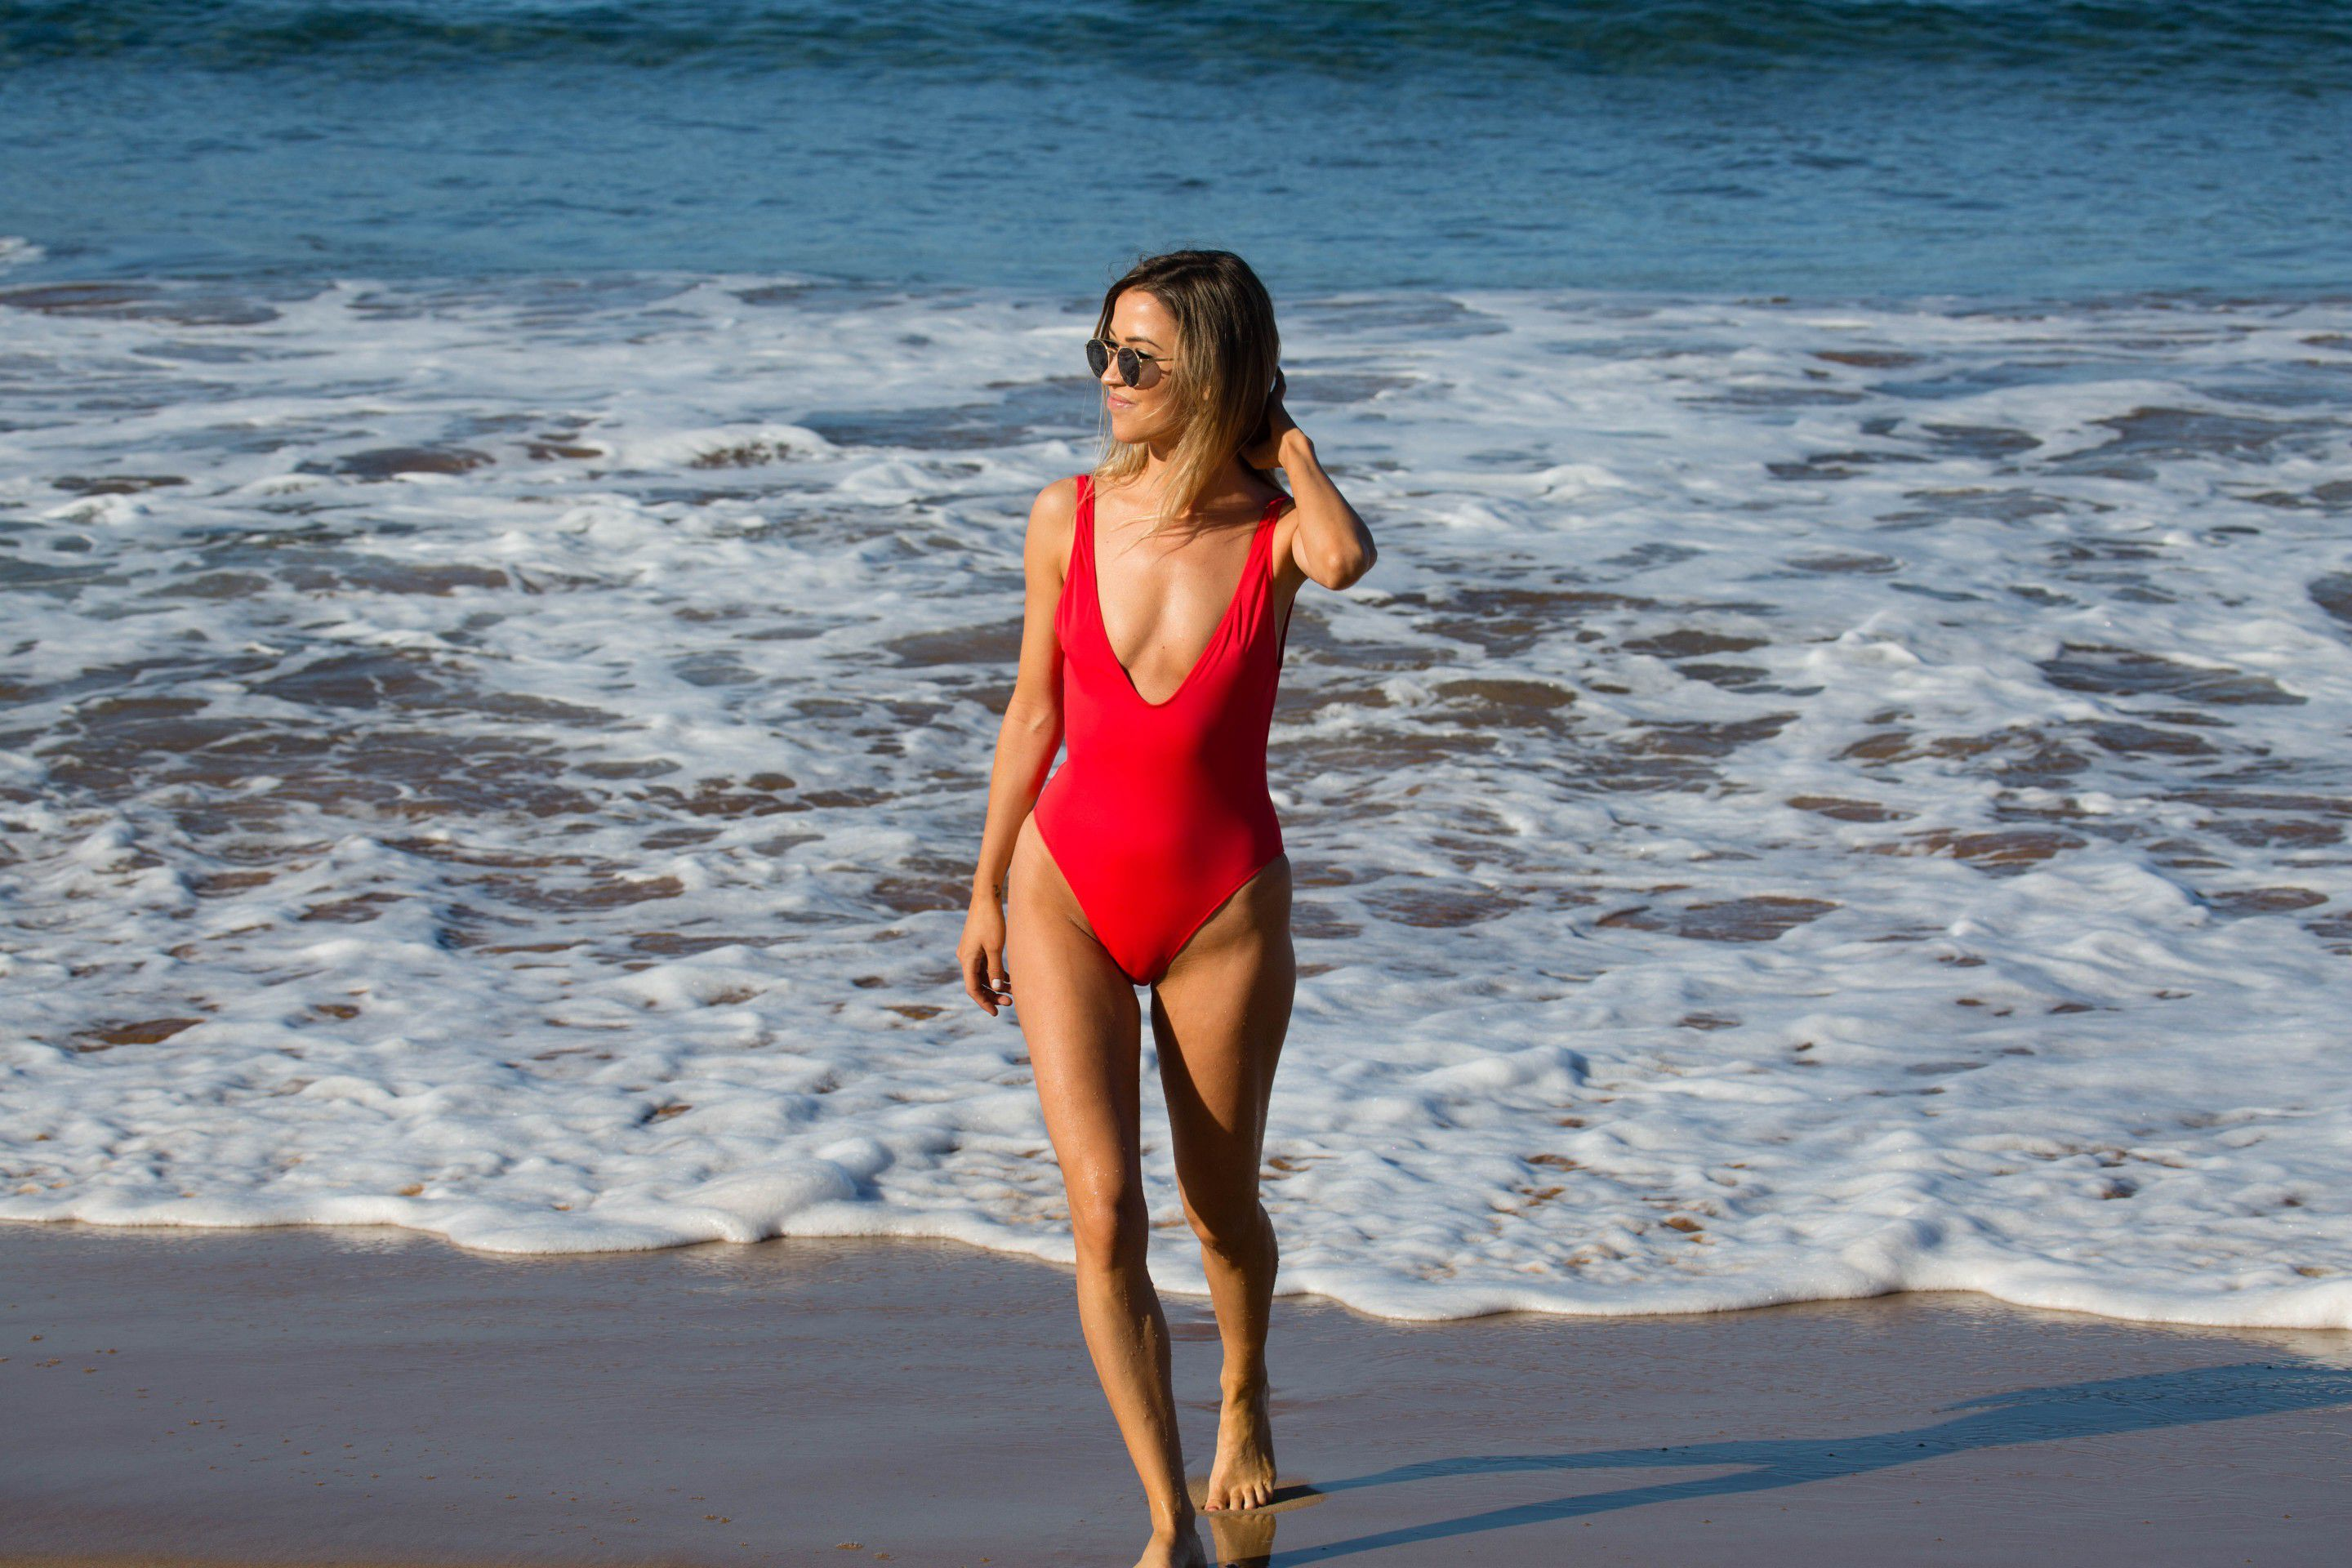 kaitlyn-bristowe-cameltoe-in-red-swimsuit-on-the-beach-in-hawaii-3095